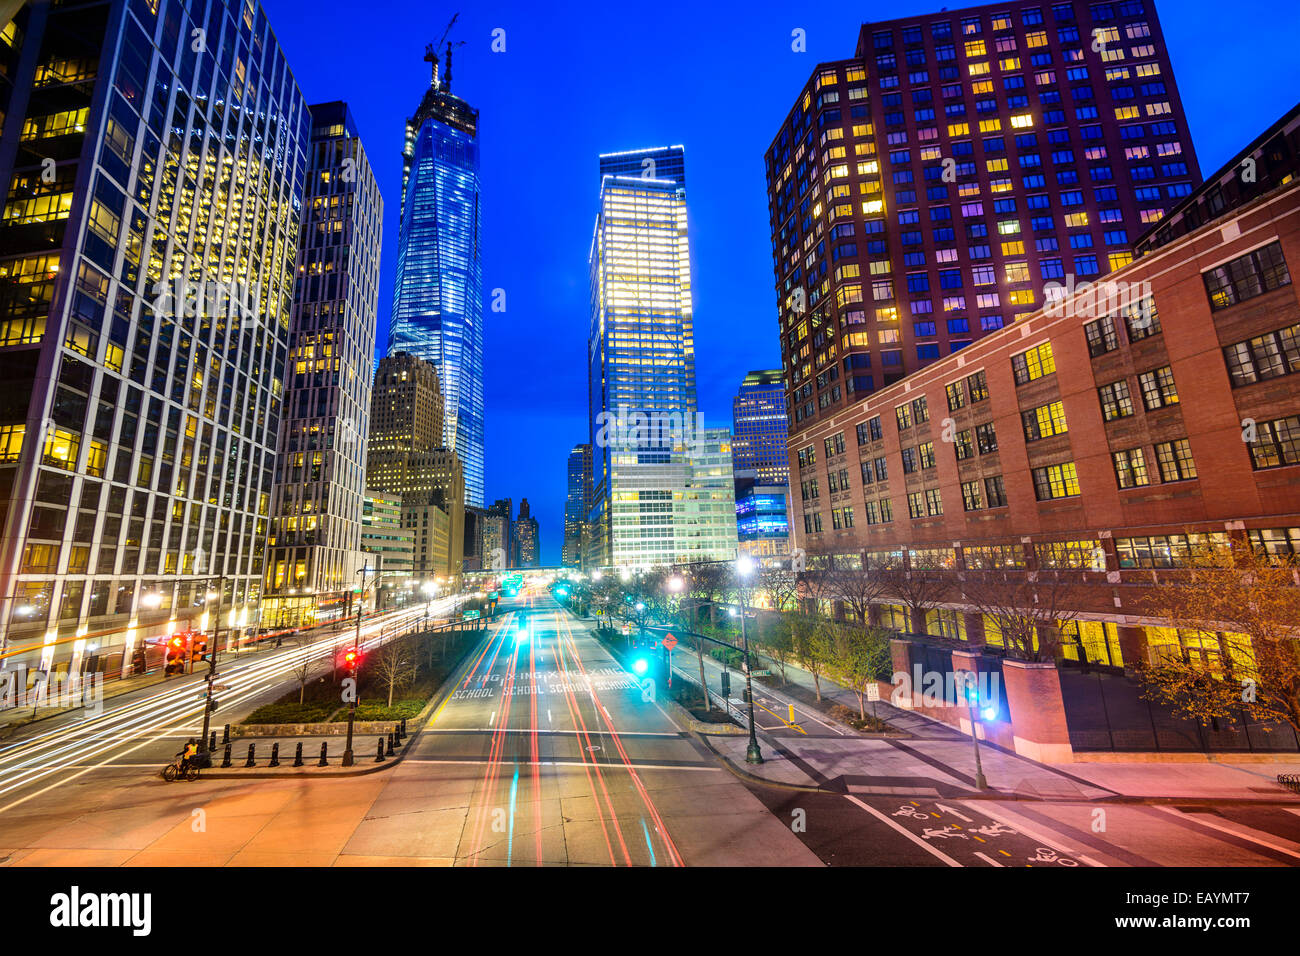 New York City cityscape in Lower Manhattan. - Stock Image